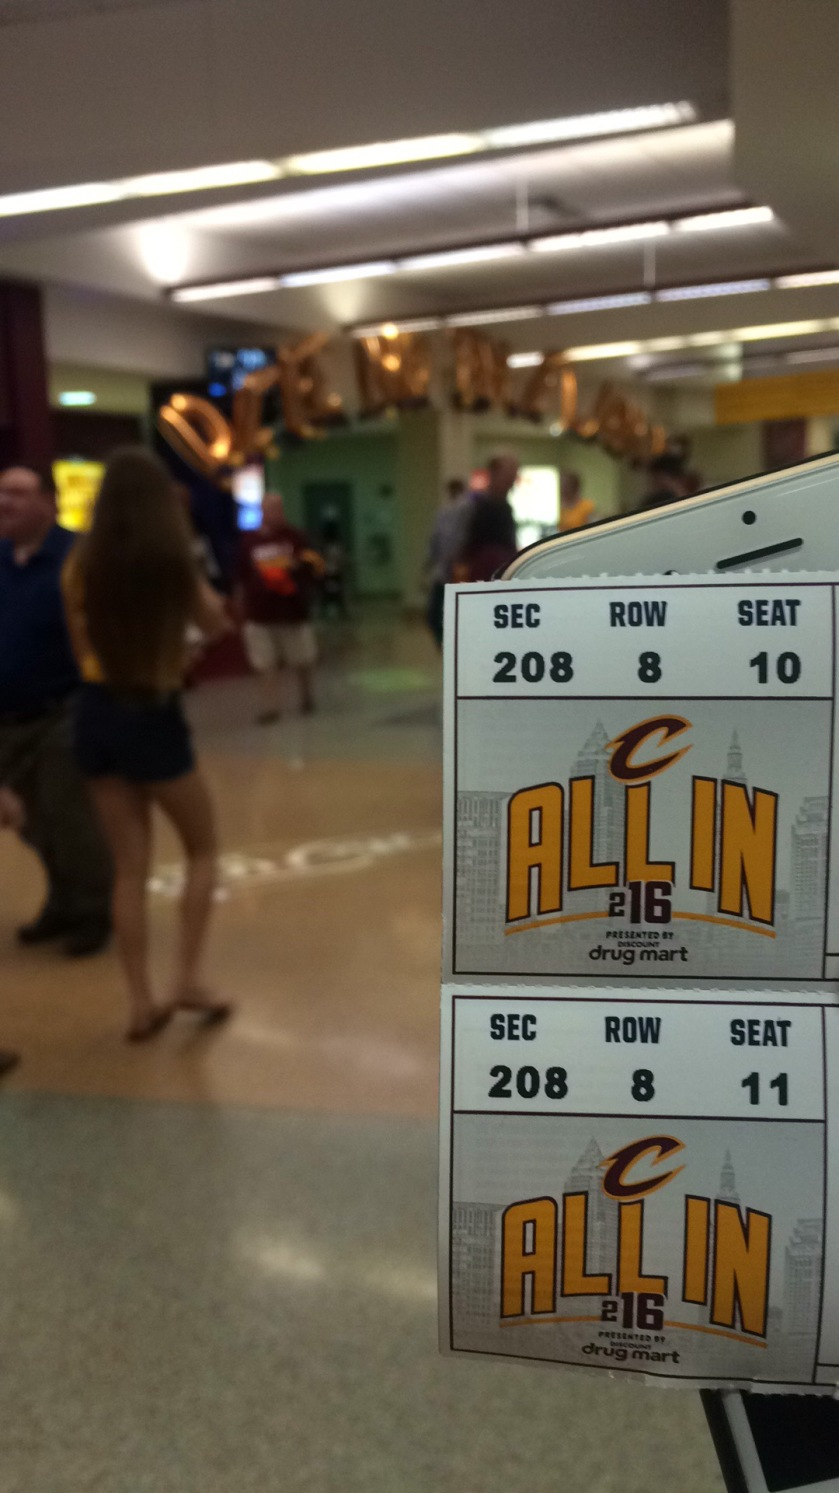 amerika-honeymoon-nbafinals2016-tickets-love